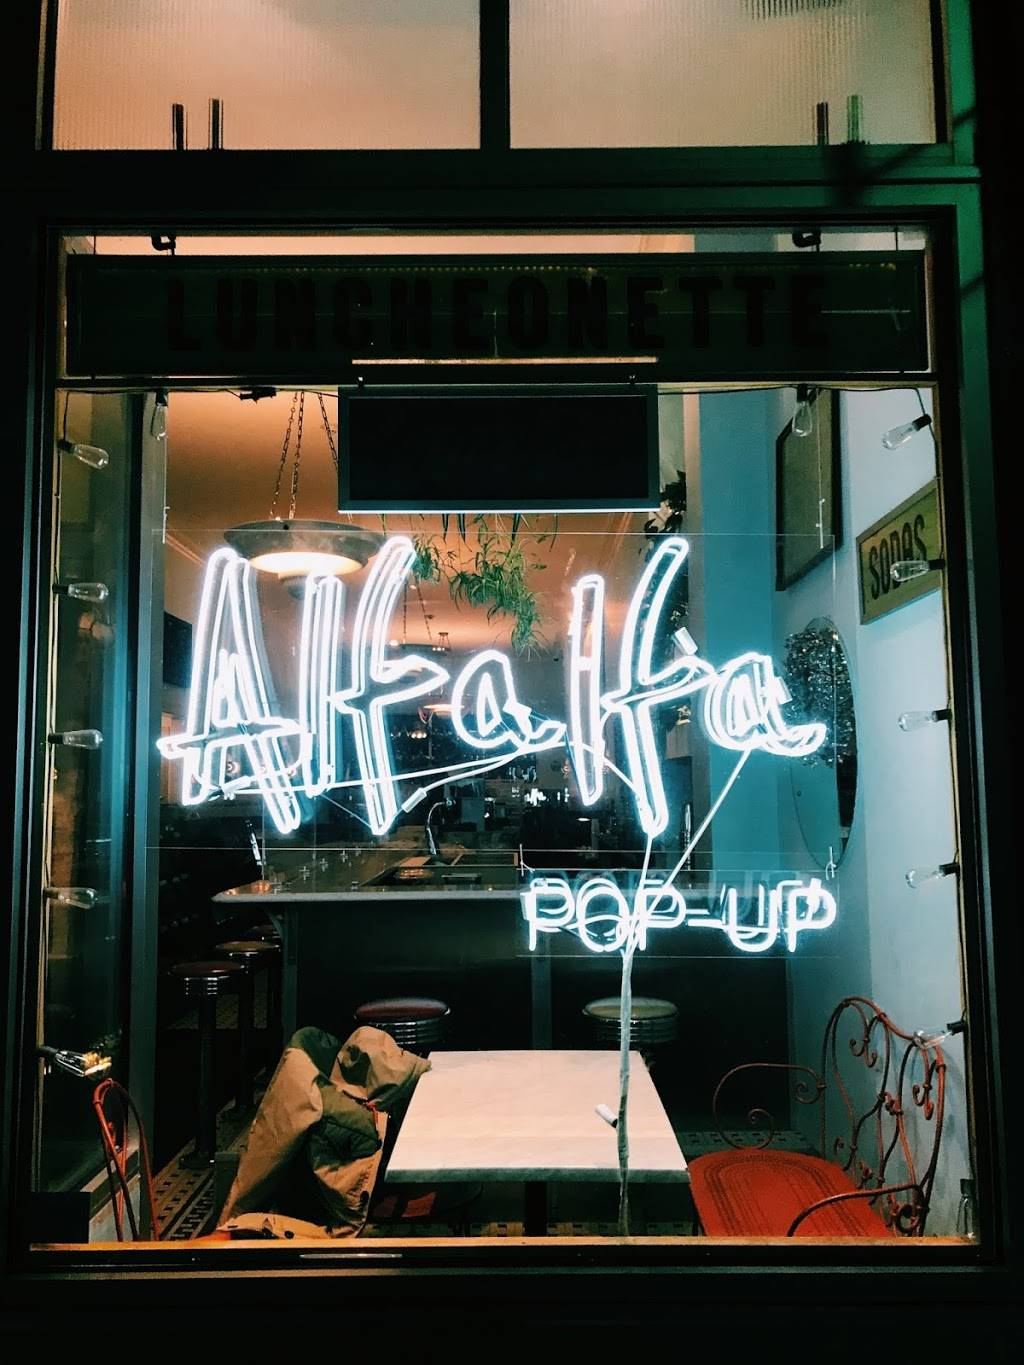 Alfalfa | restaurant | 1110 Washington St, Hoboken, NJ 07030, USA | 2017900491 OR +1 201-790-0491